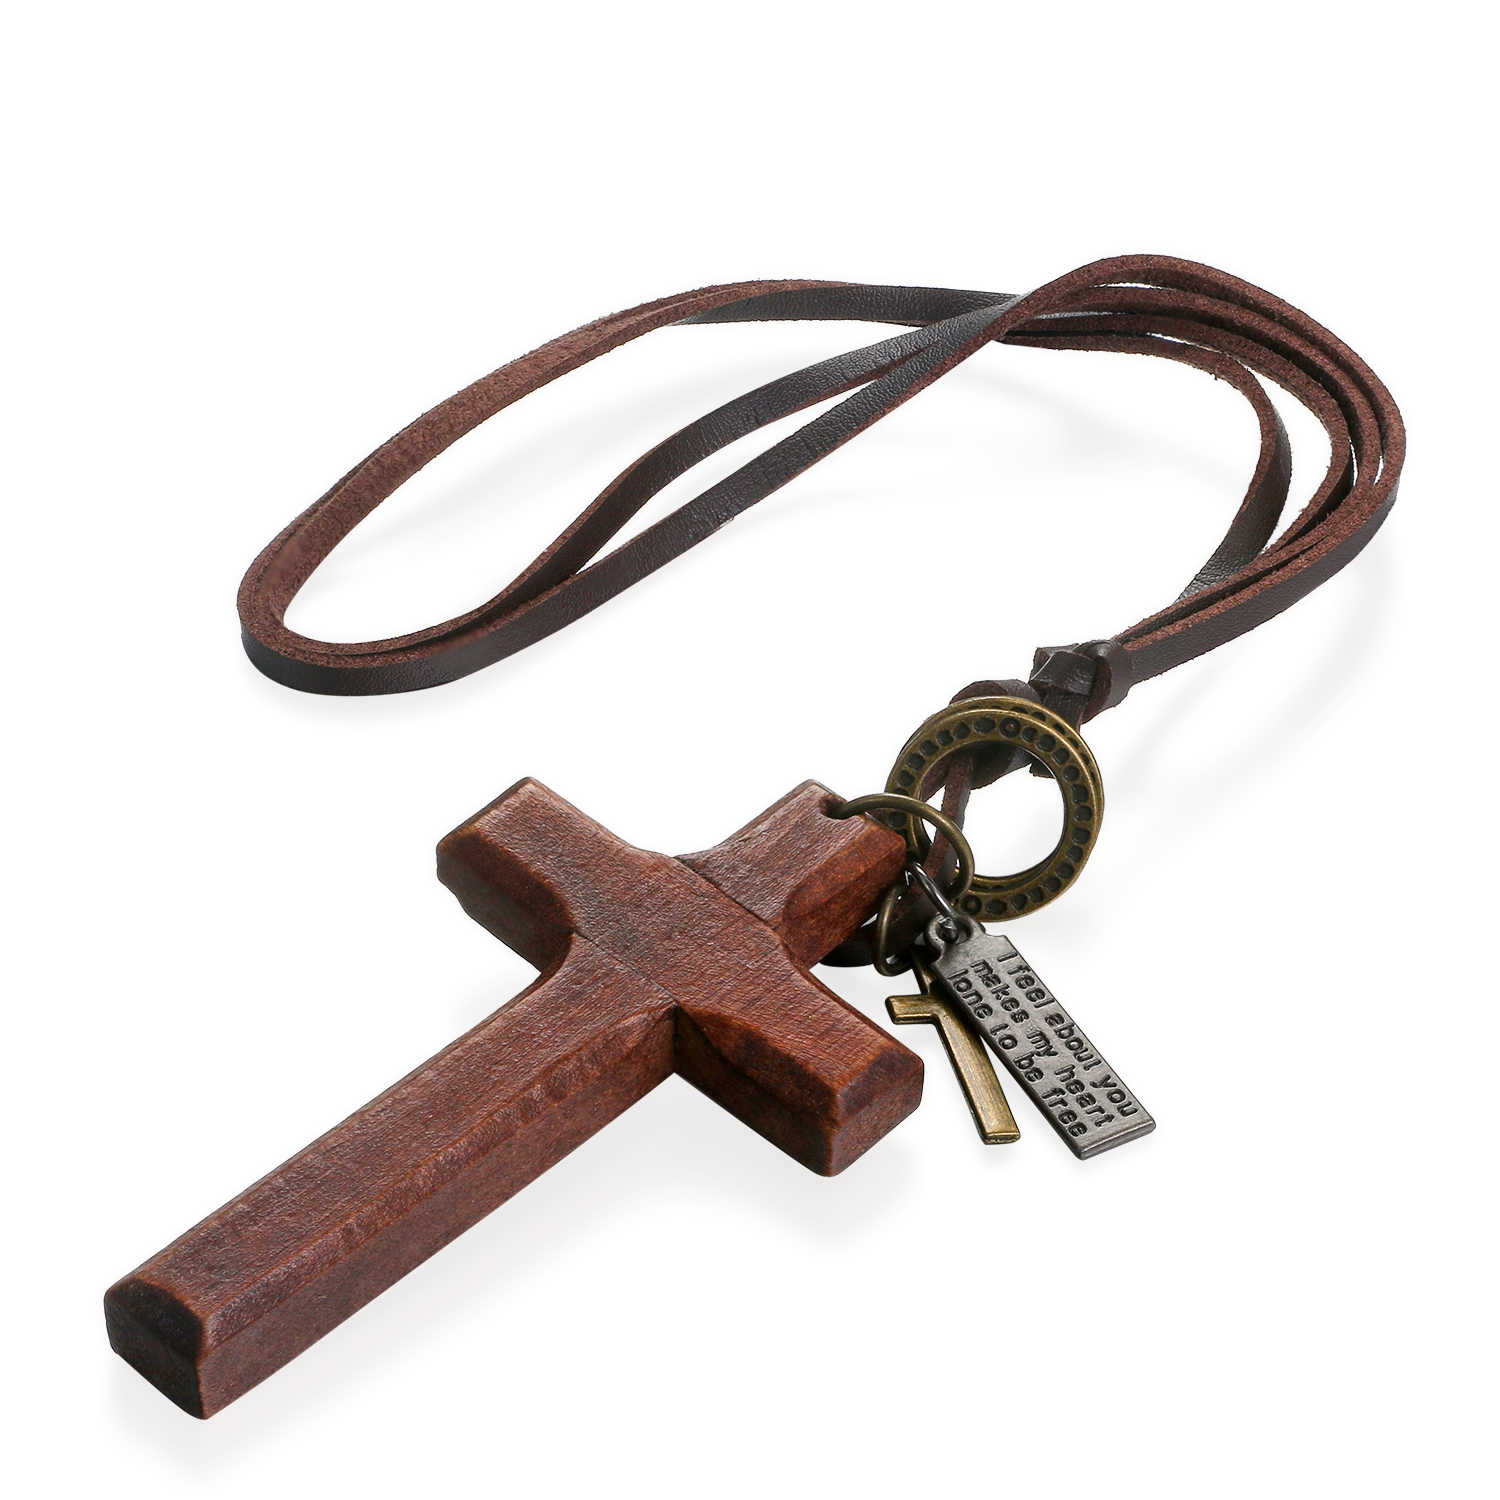 BONISKISS Vintage Wood Cross Necklaces For Men Adjustable Leather Necklace Cool Decoration For Man Birthday Gift Male Jewelry